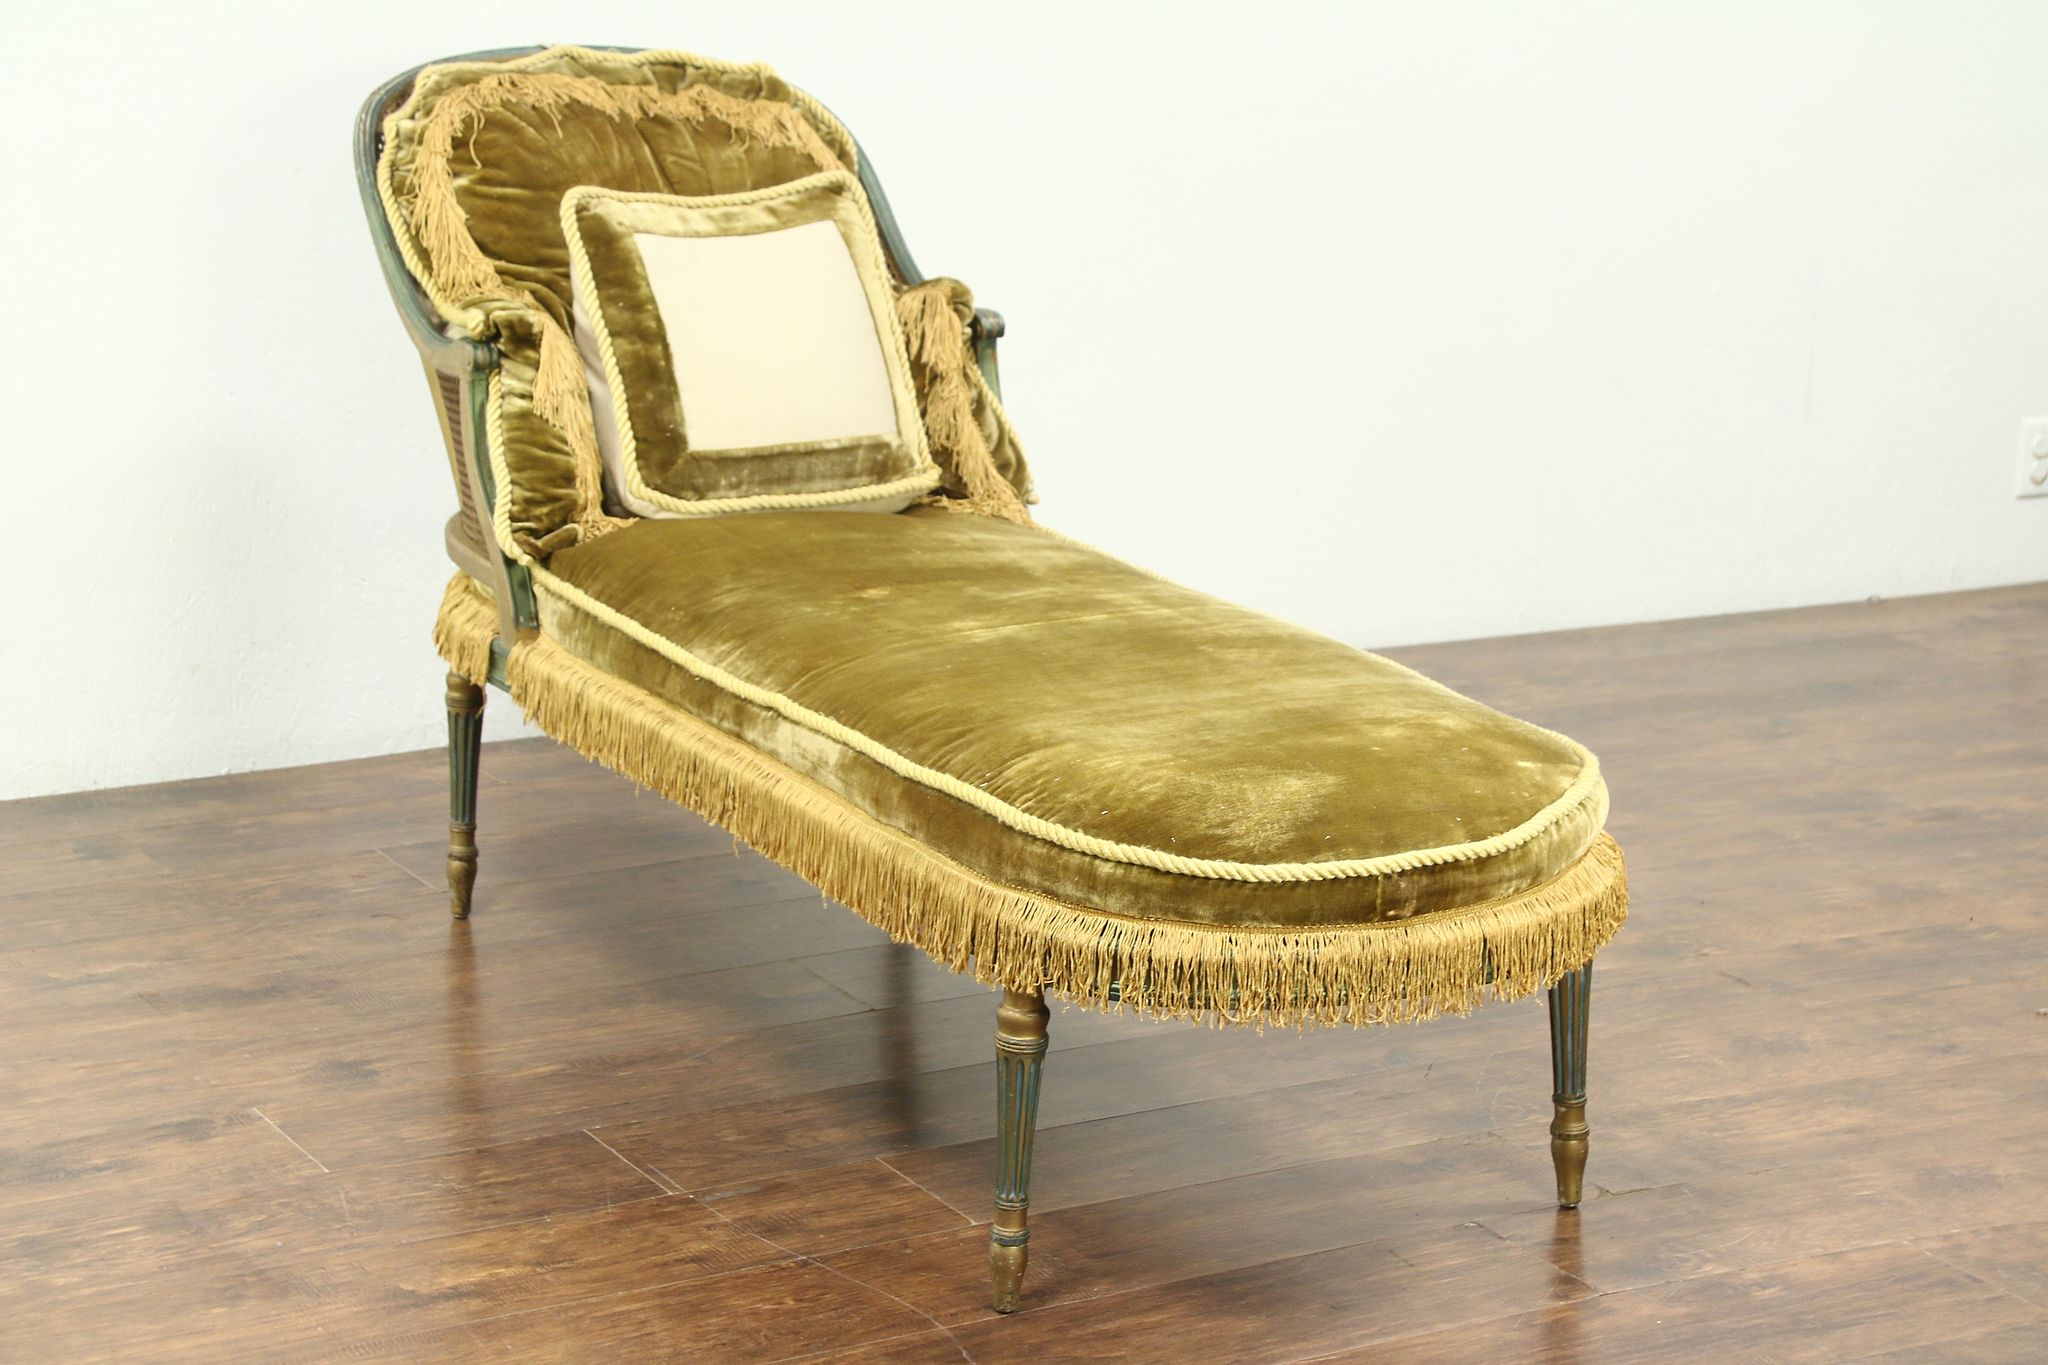 Chaise Style Louis 16 Chaise Lounge Sofa 1920 S Antique Louis Xvi Style Caned Seat